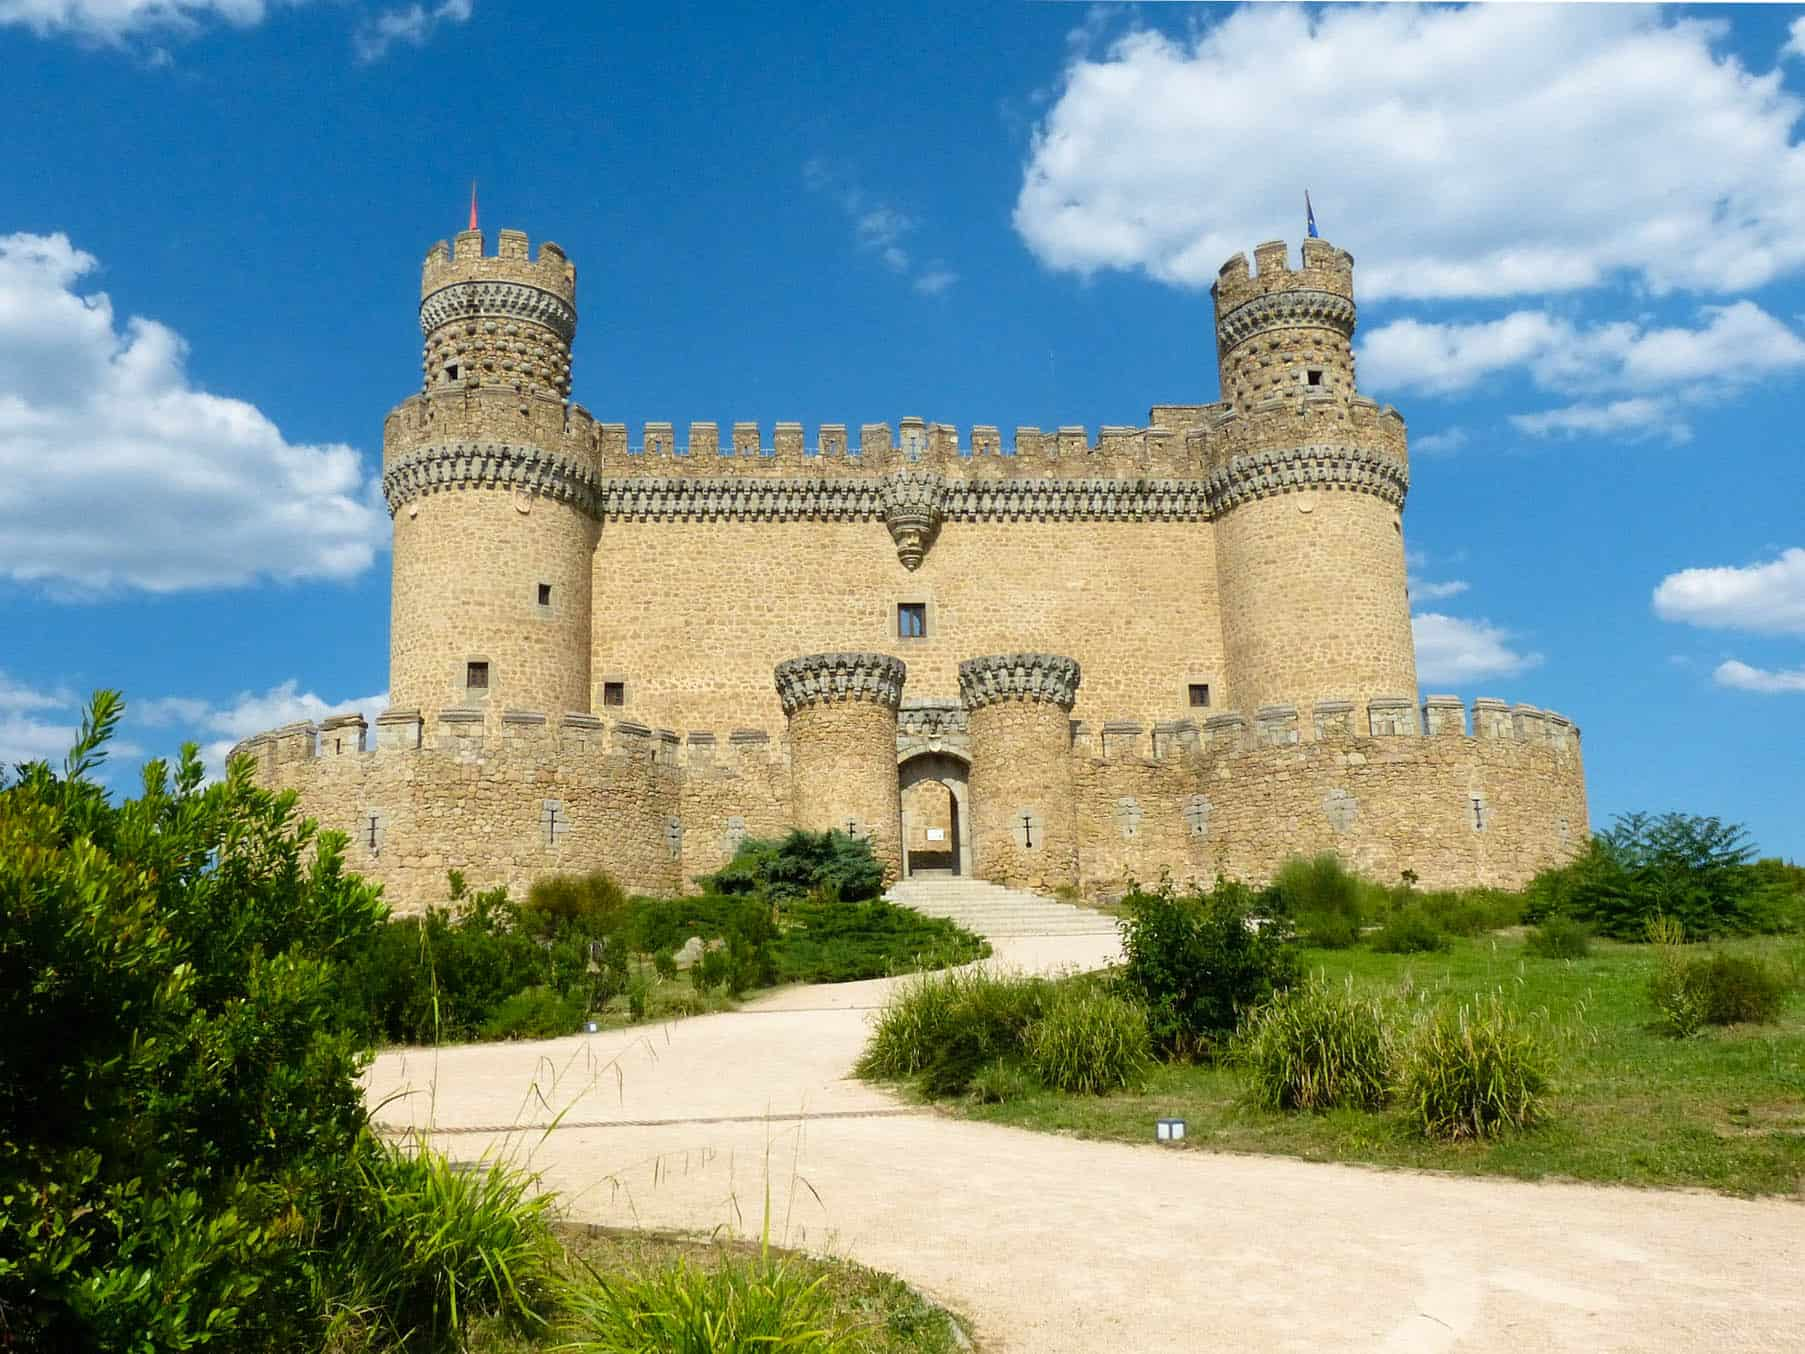 New Castle of Manzanares el Real